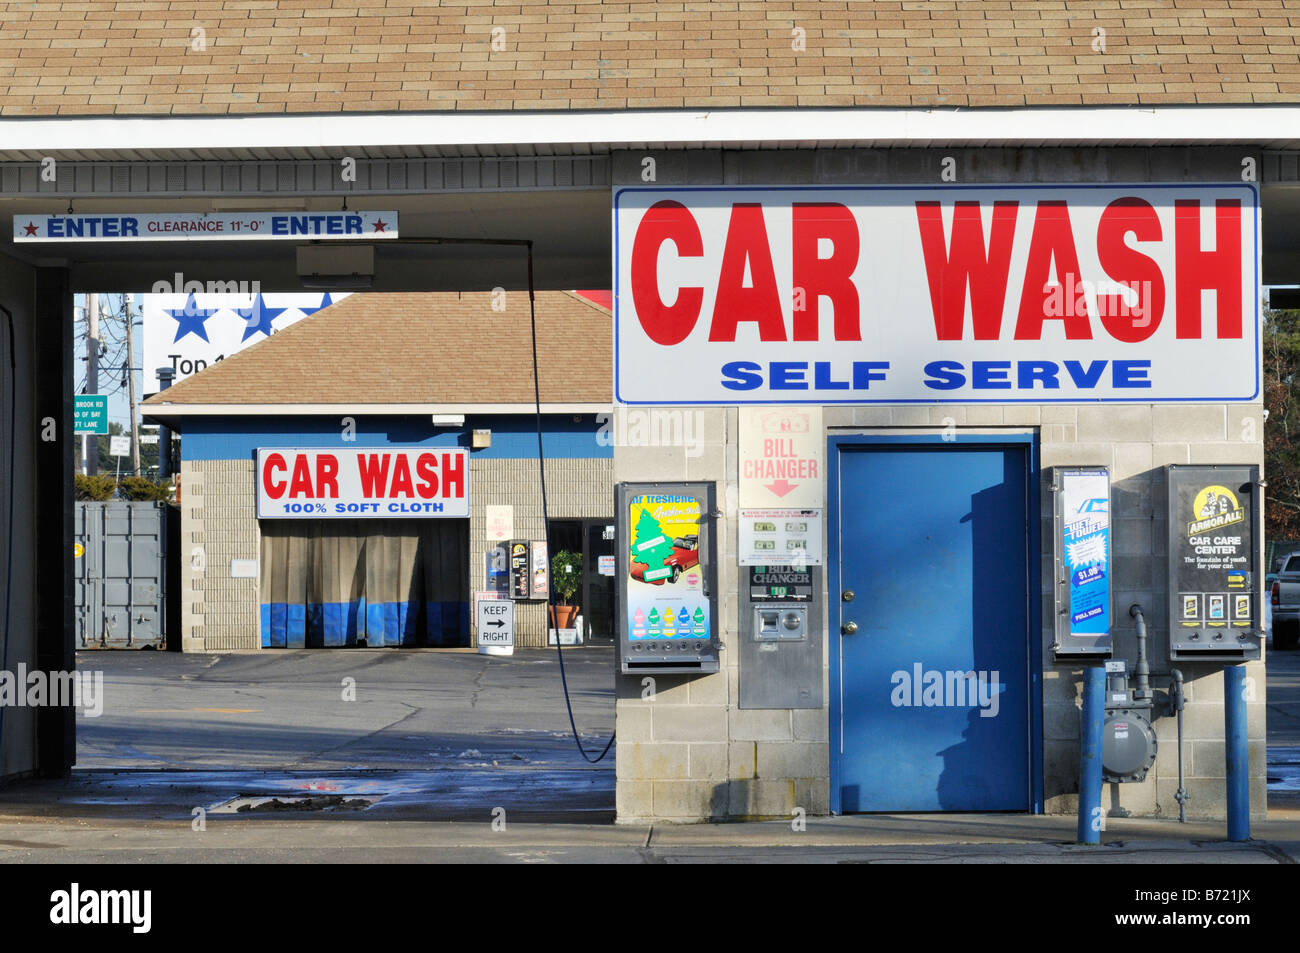 Car wash signs stock photos car wash signs stock images alamy car wash and self serve with signs and nobody stock image solutioingenieria Images